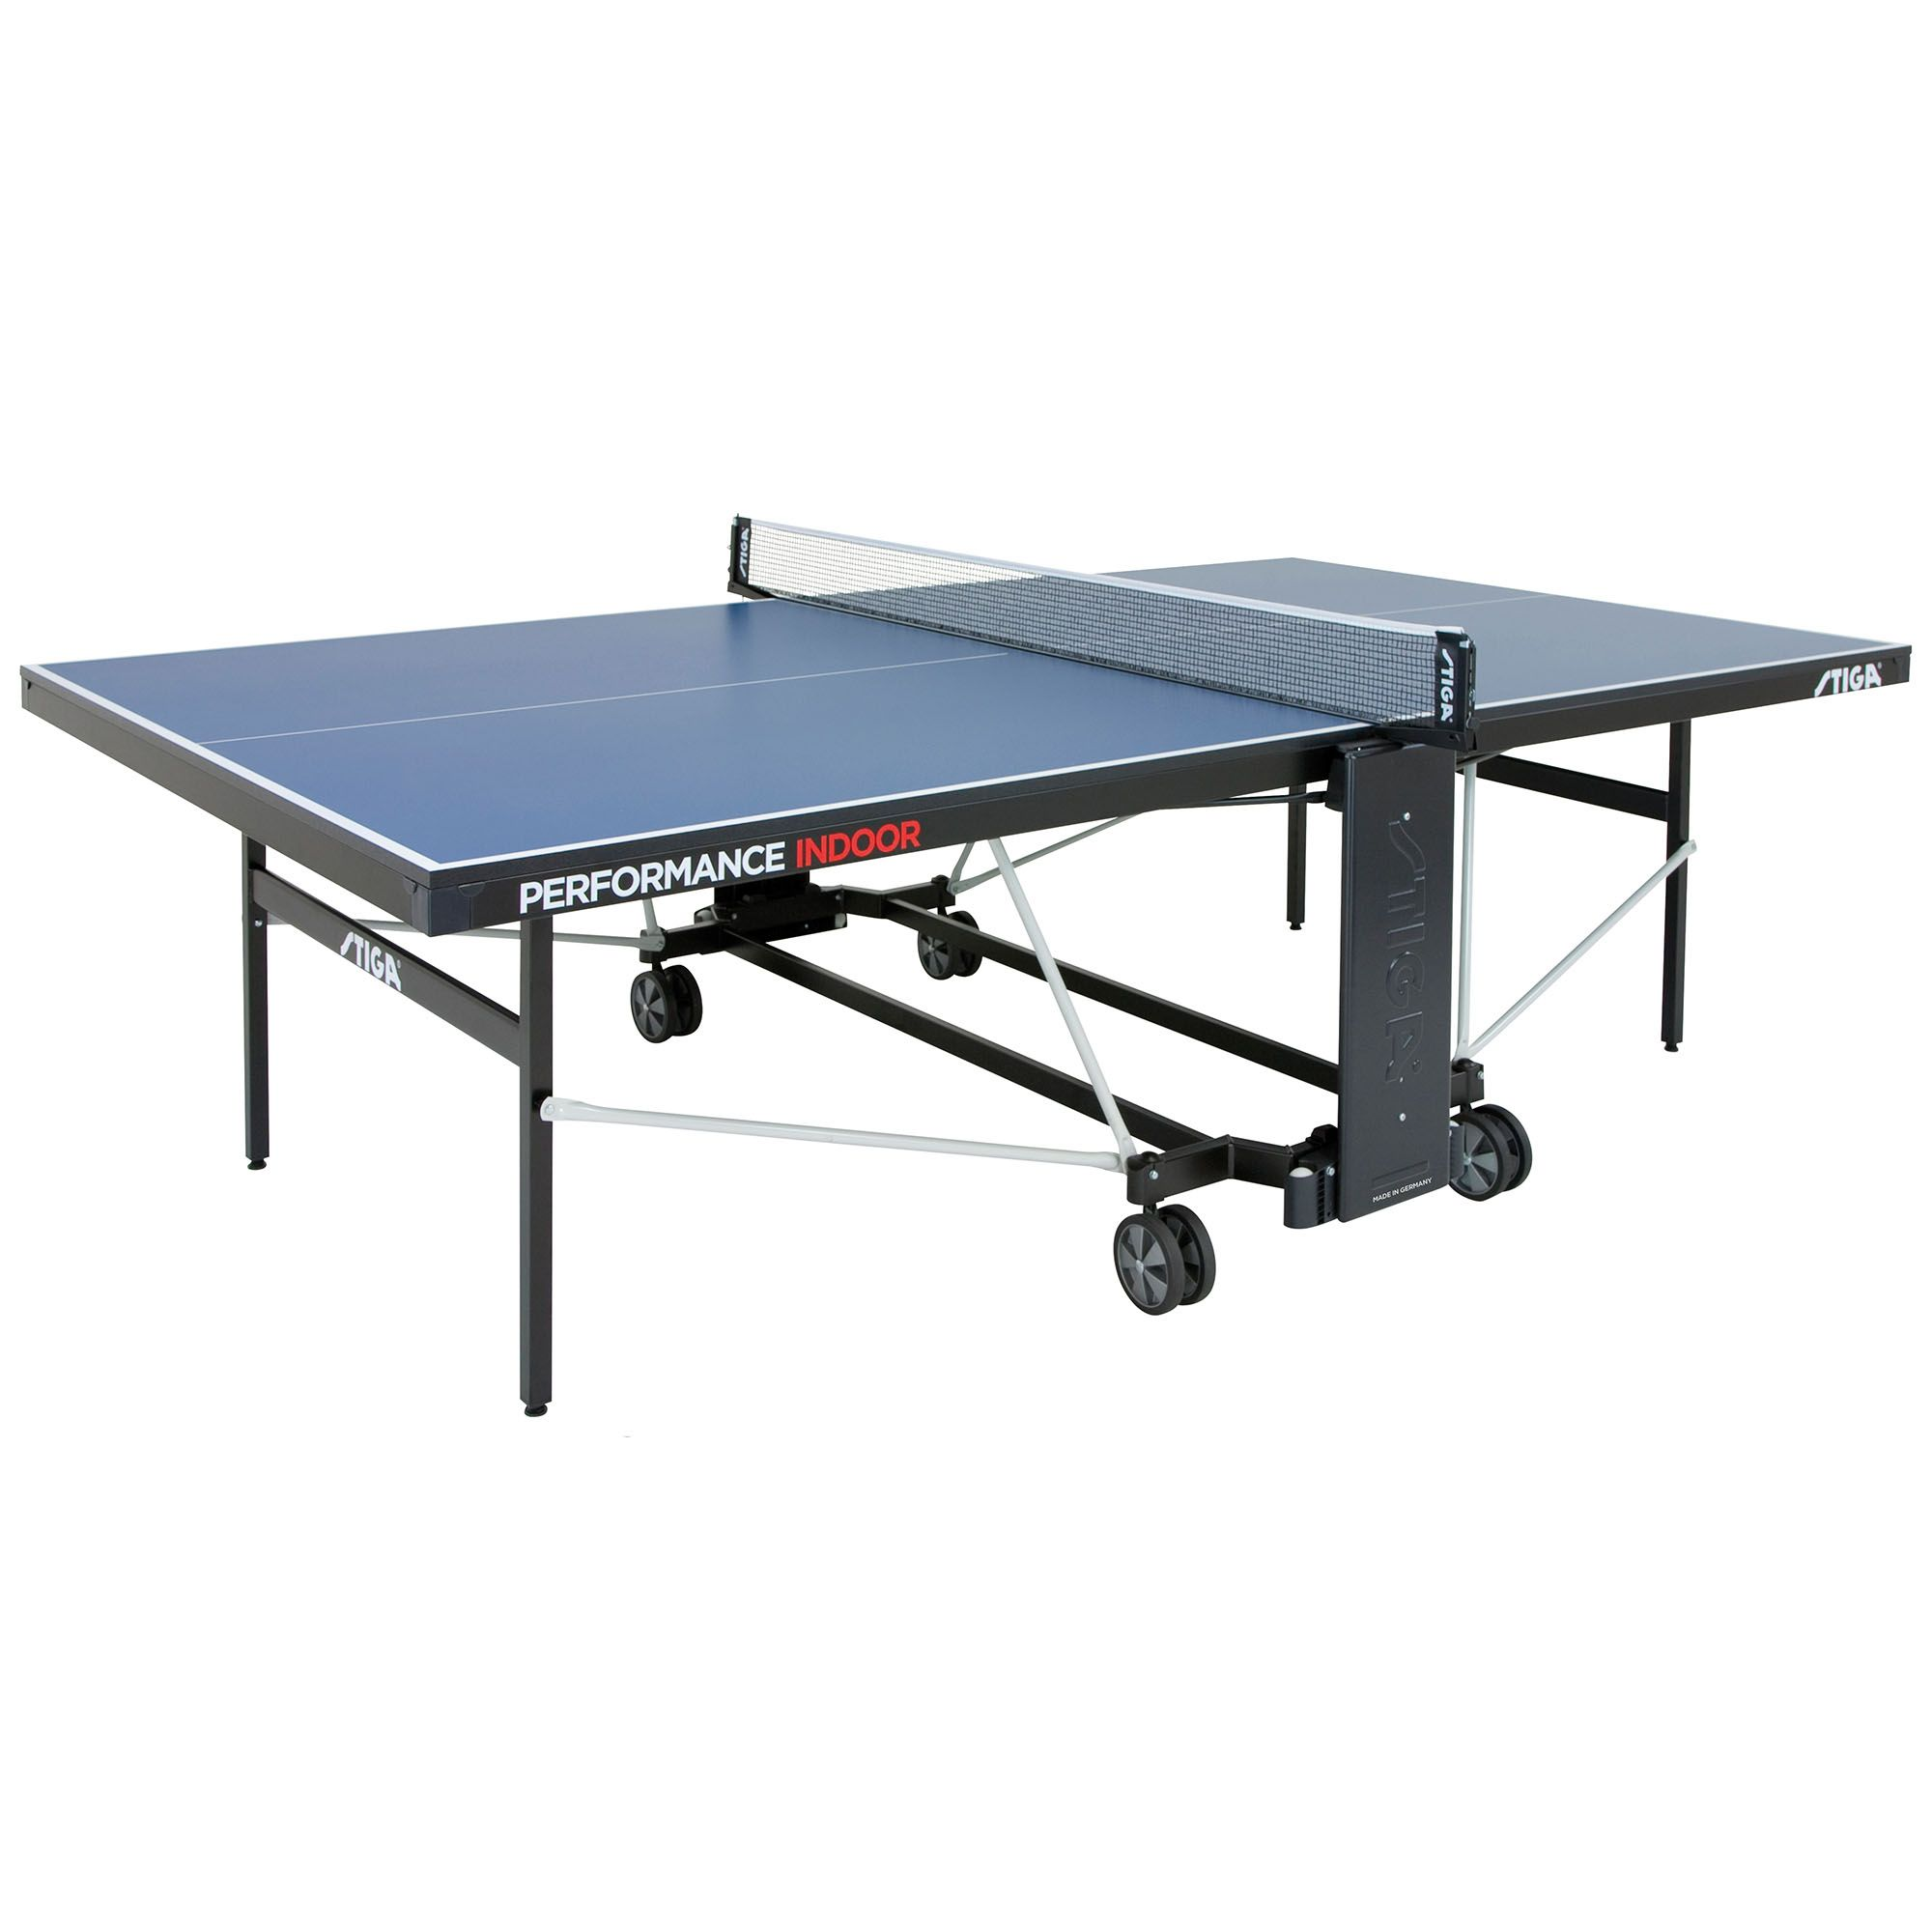 Stiga performance cs indoor table tennis table - Stiga outdoor table tennis table ...